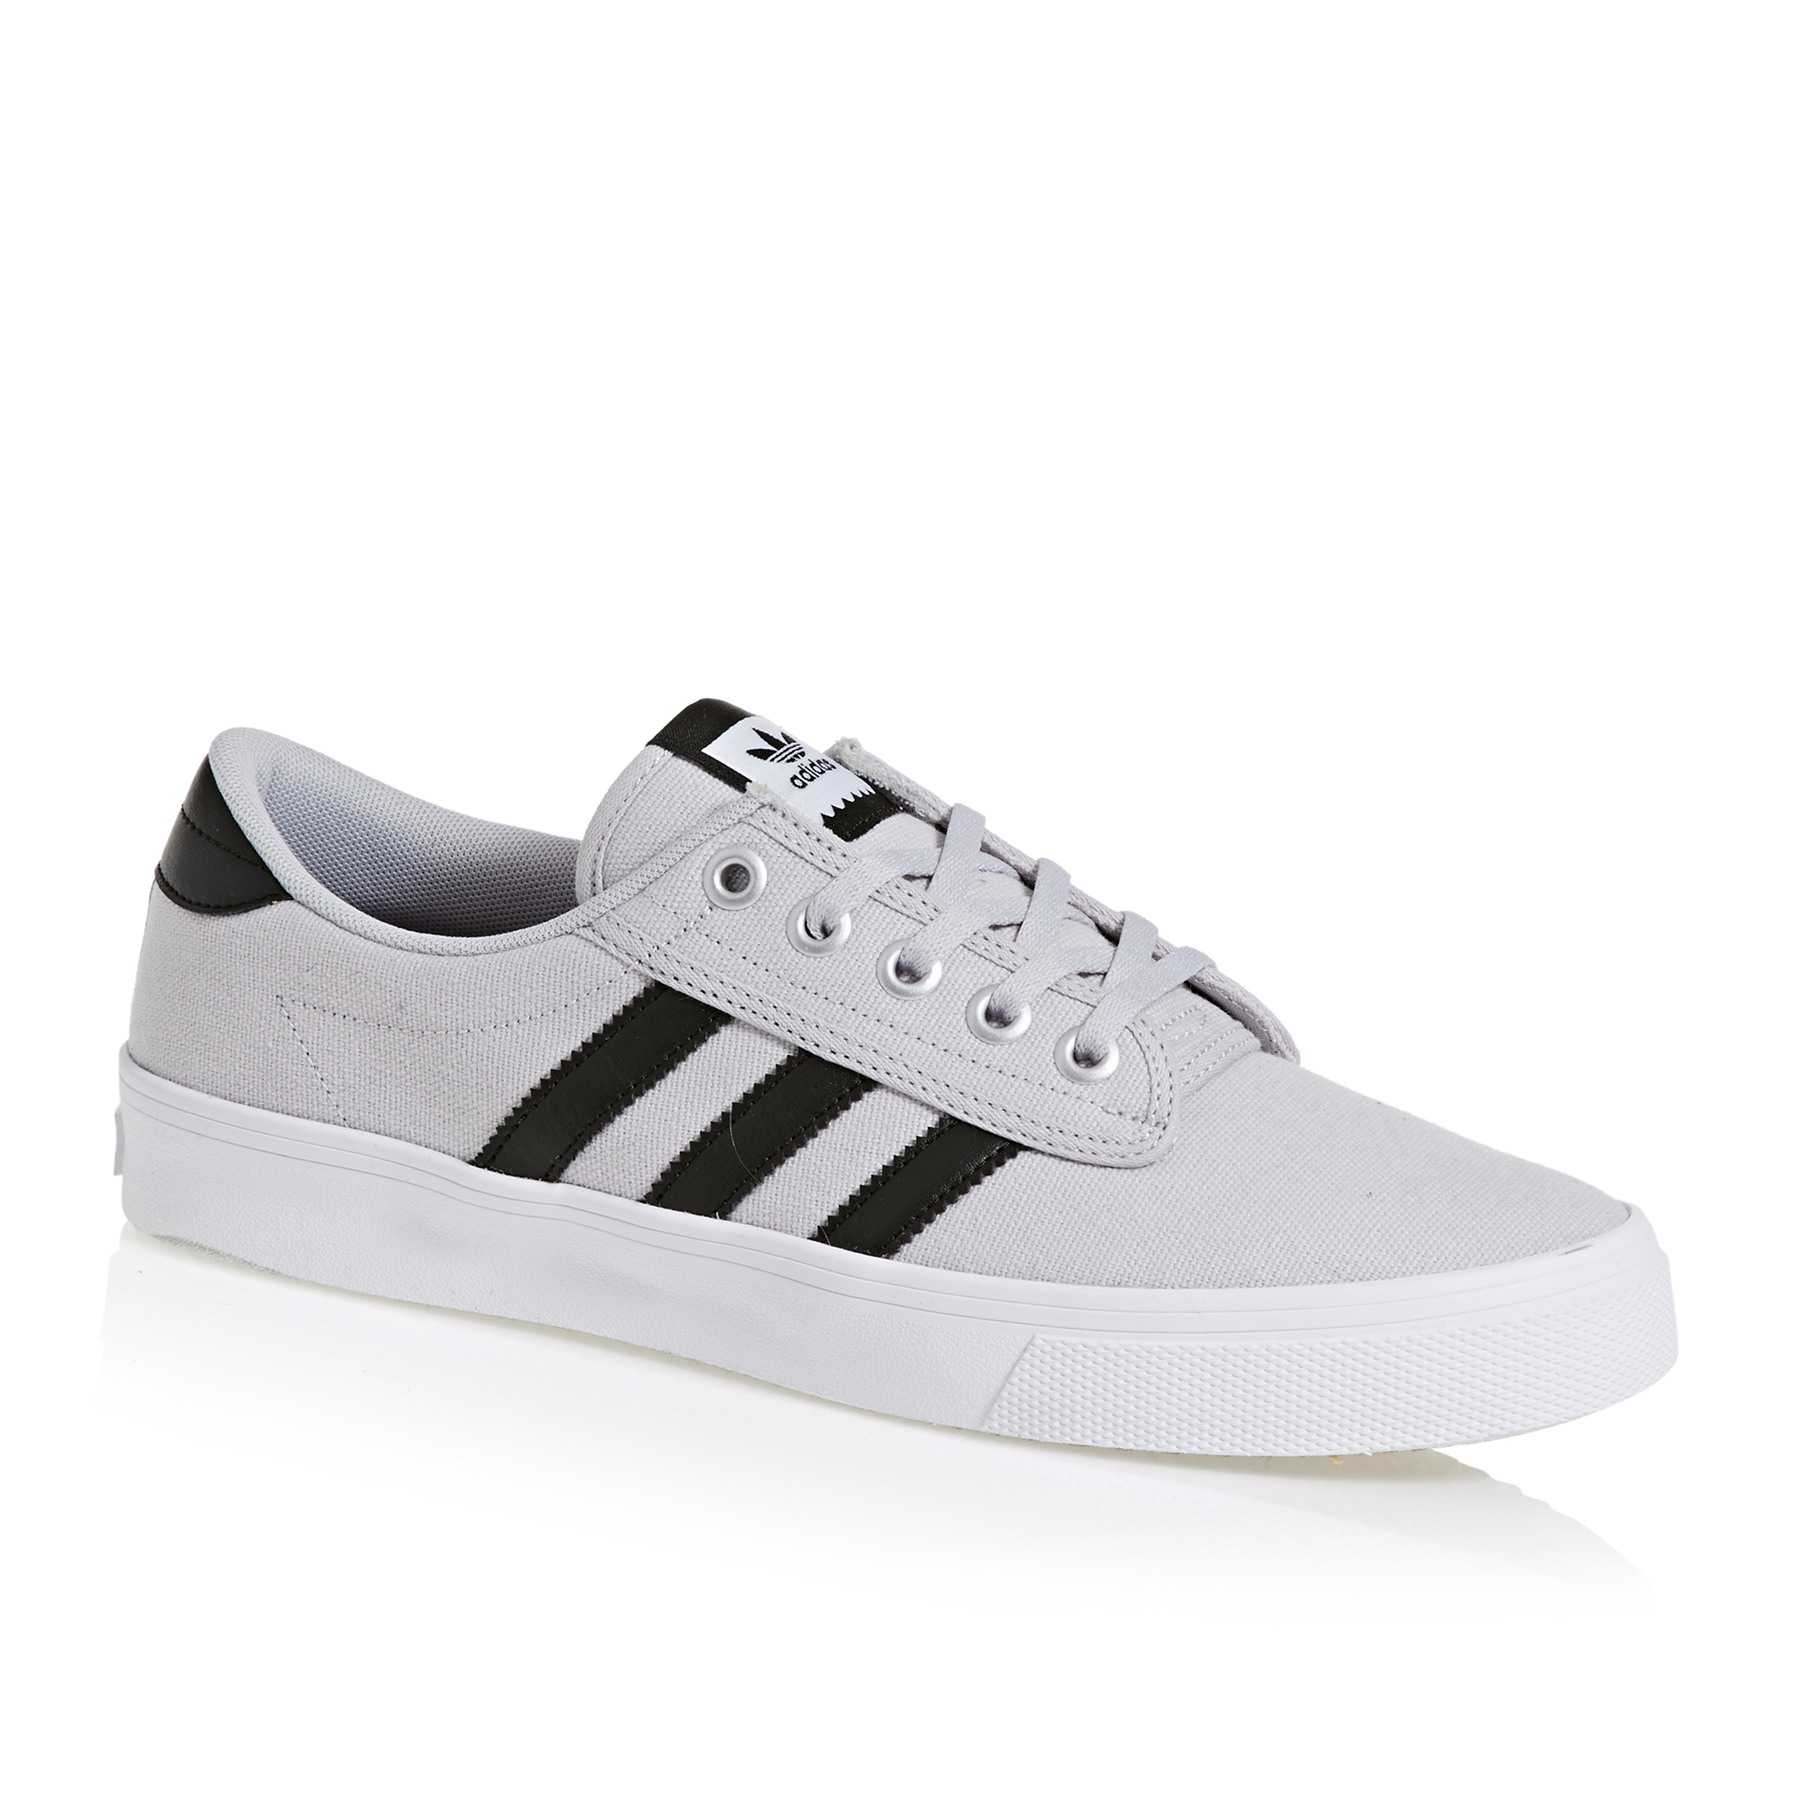 Adidas Kiel Schuhe Free Delivery options on All Orders